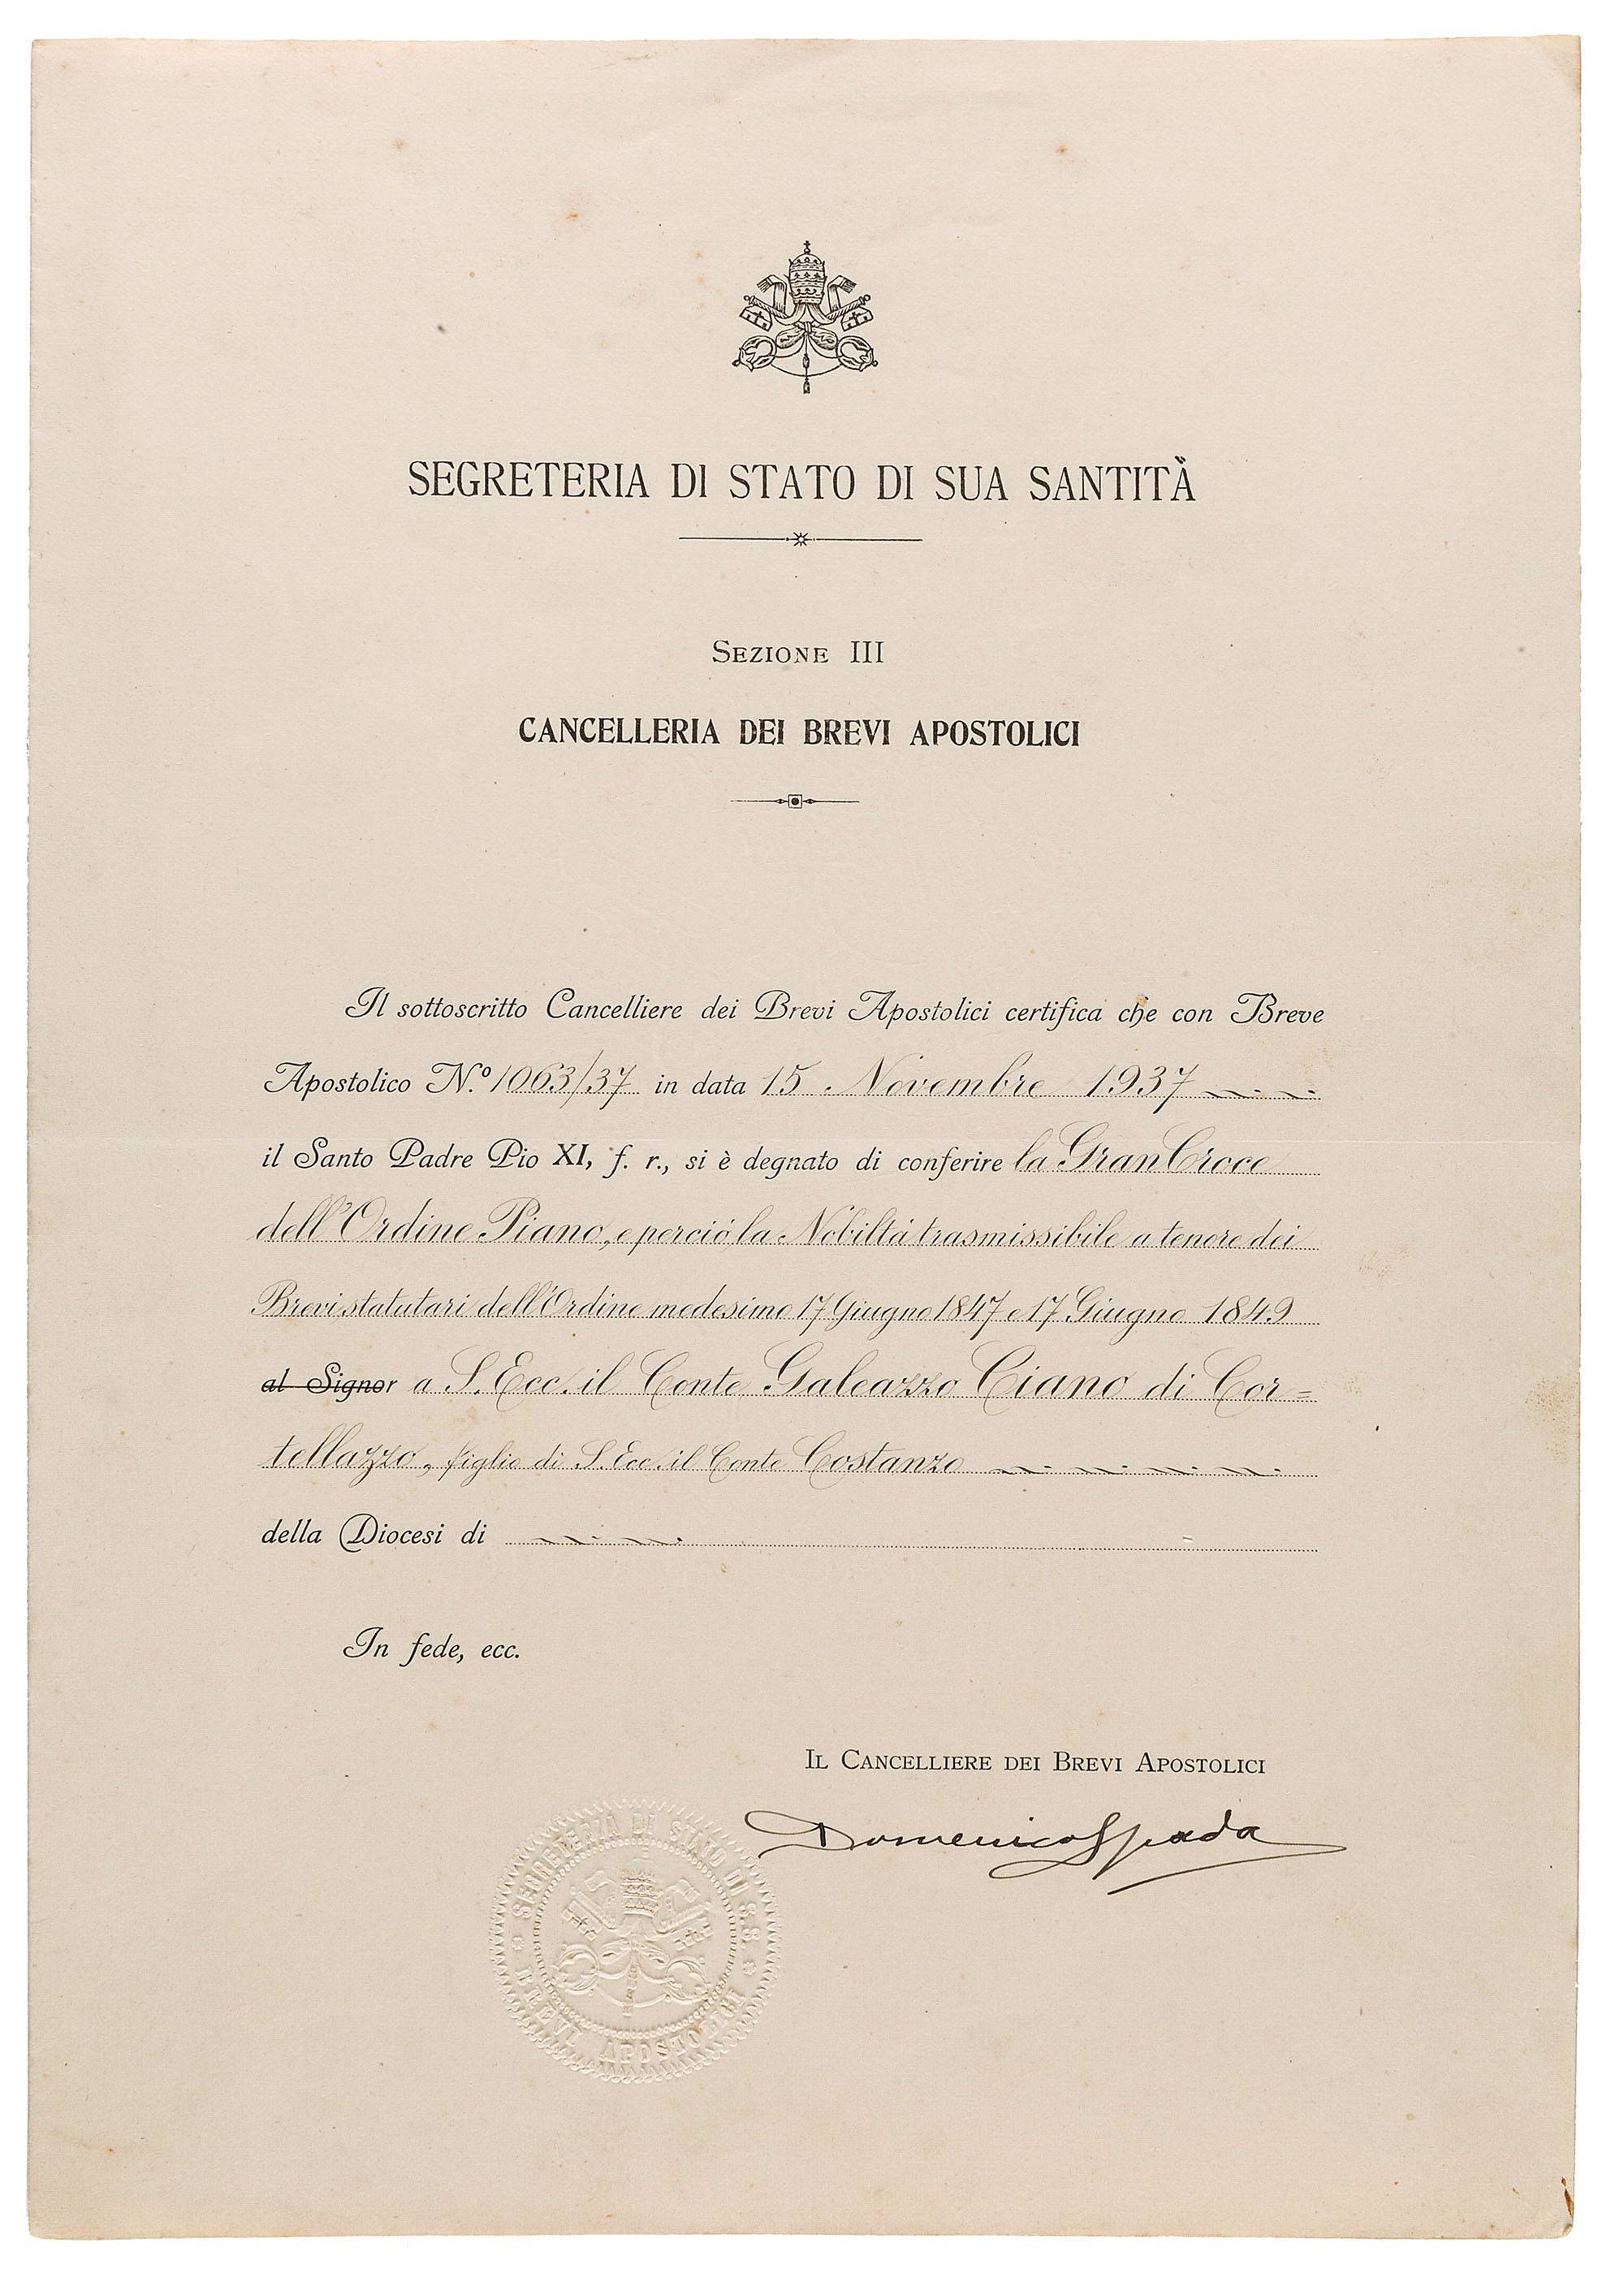 Fascia con scatola non pertinente diploma datato 1937 lot 948 ordine piano vaticano thecheapjerseys Image collections